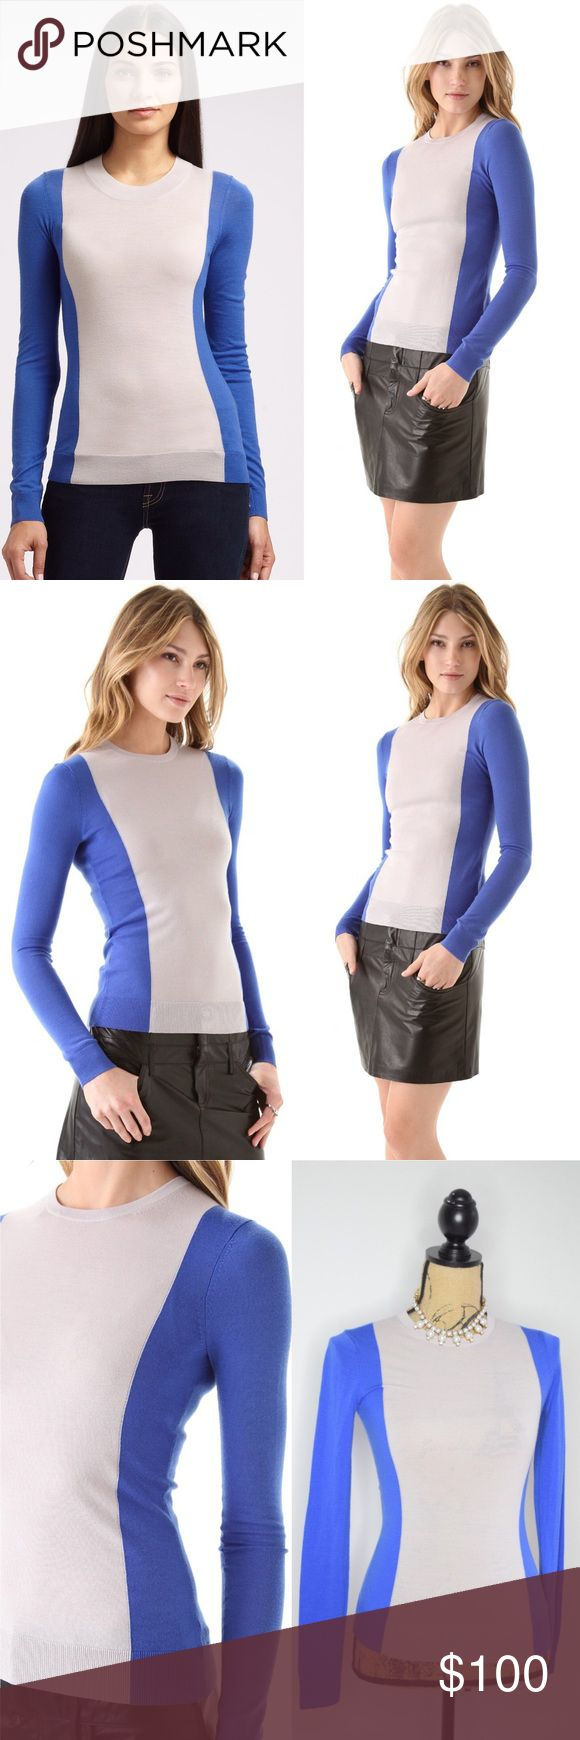 Theory Porsha Preen Cobalt Sweater Bold colorblocking lends visual structure to this slim Theory sweater, styled in easy to layer light knit. Ribbed edges. Sold out at Shop Bop, retails $245. Brand new with tags. Style C0711725.  Fabric: Fine knit. 100% wool. Dry clean. Bright lagoon color.   MEASUREMENTS Length: 23in, size P (like XS). Please discuss price using the offer button. :) Theory Sweaters Crew & Scoop Necks